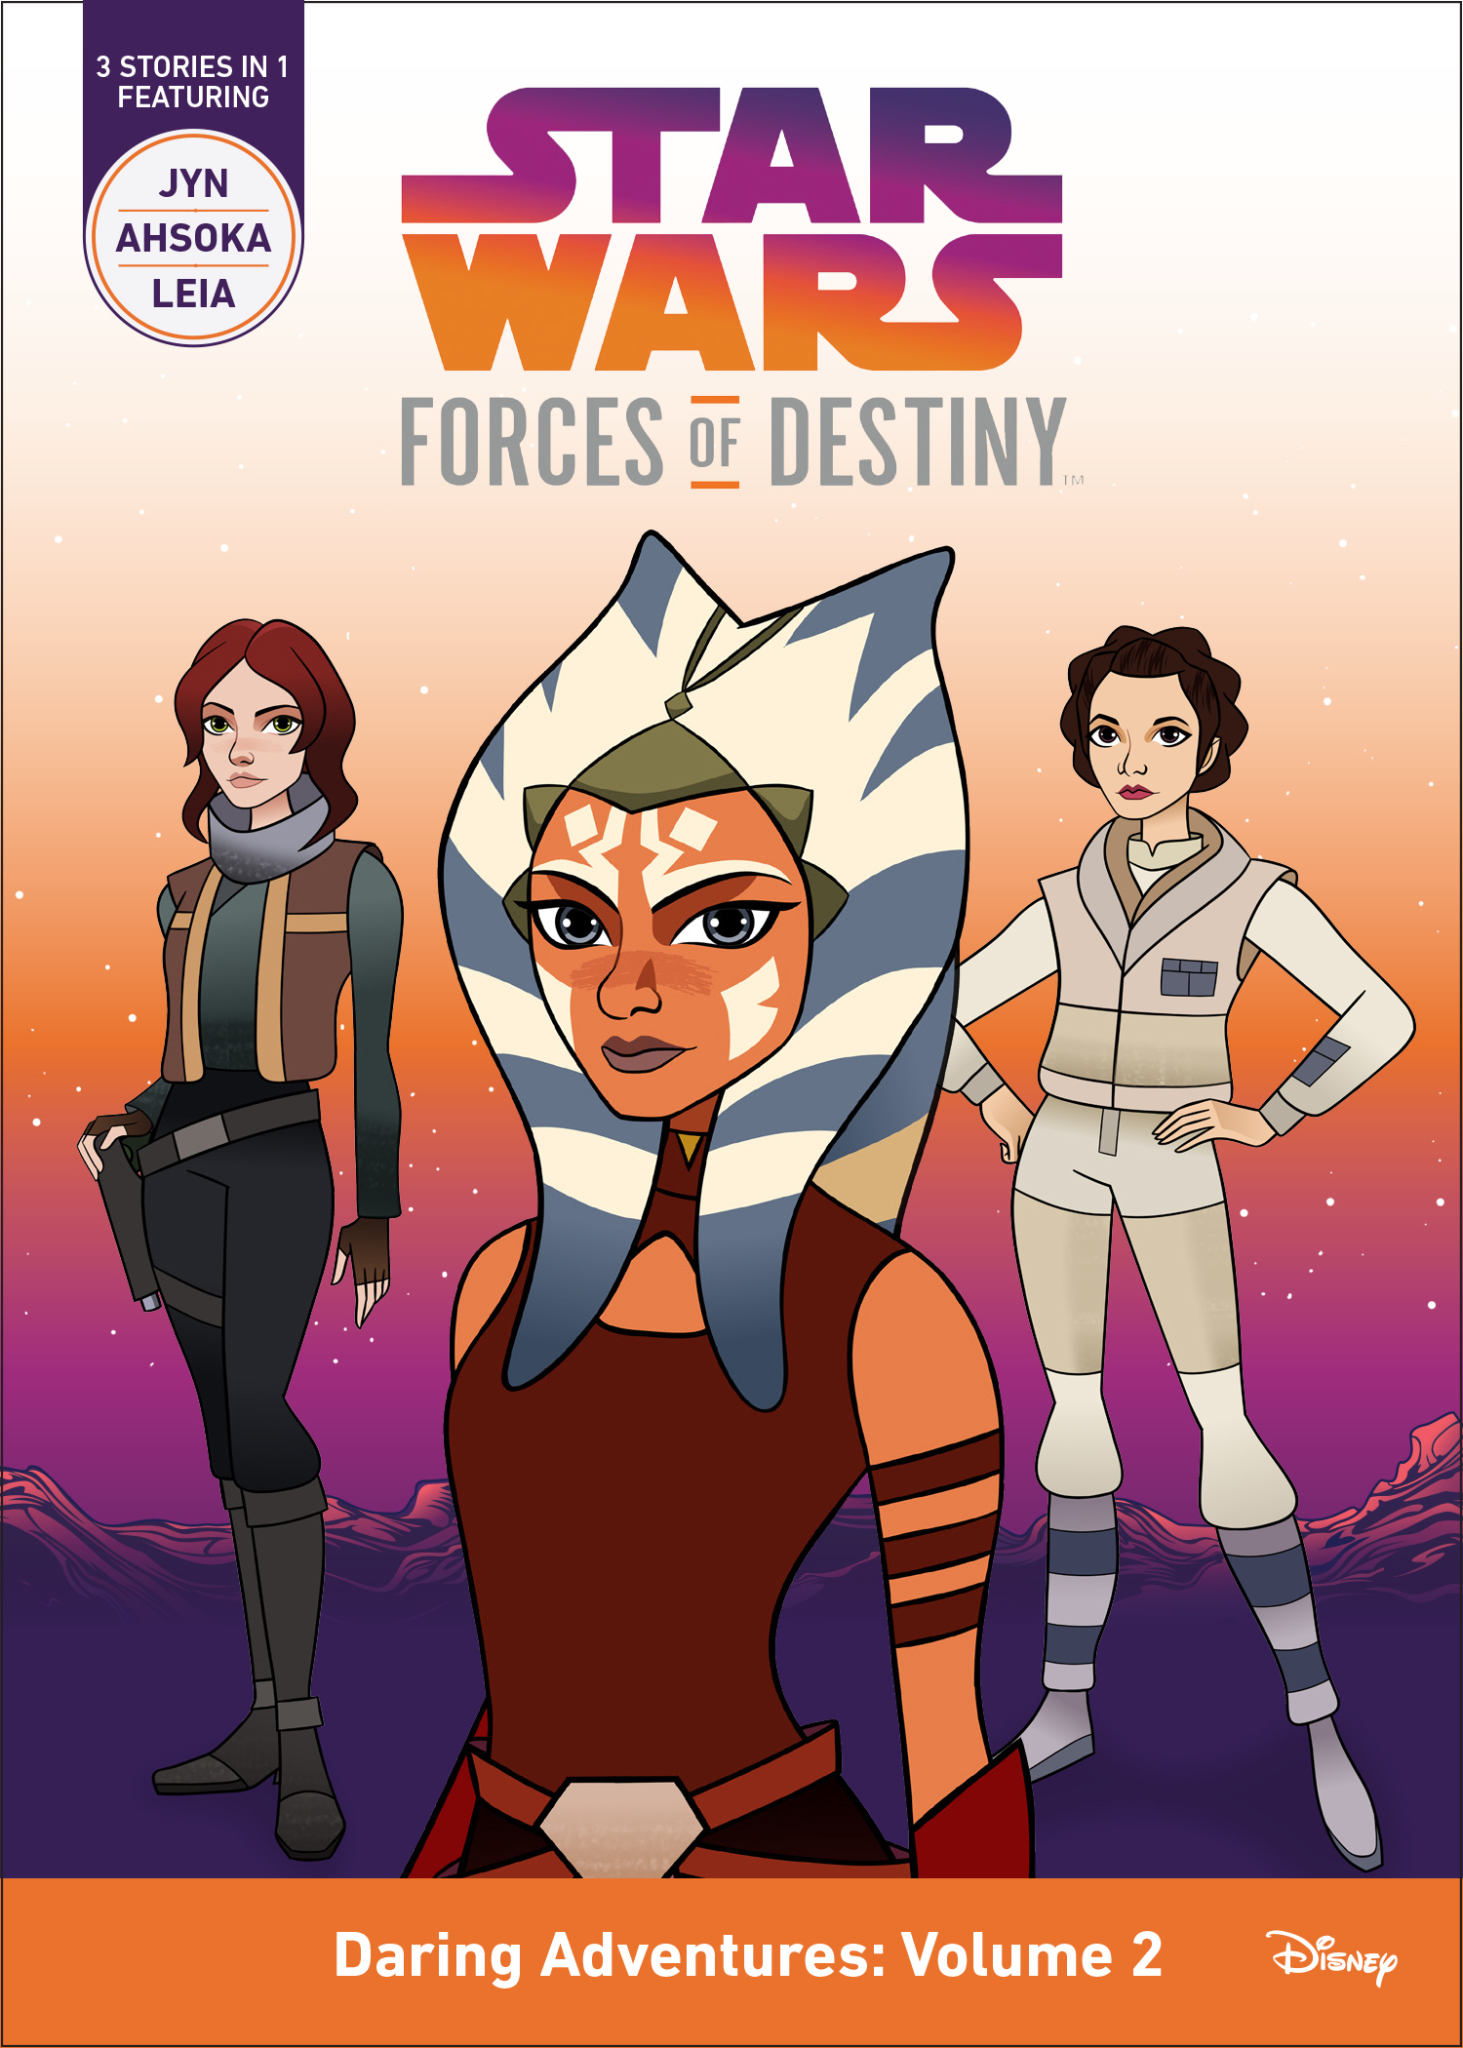 Star Wars Forces of Destiny Daring Adventures: Volume 2 Book Cover (Photo: Business Wire)